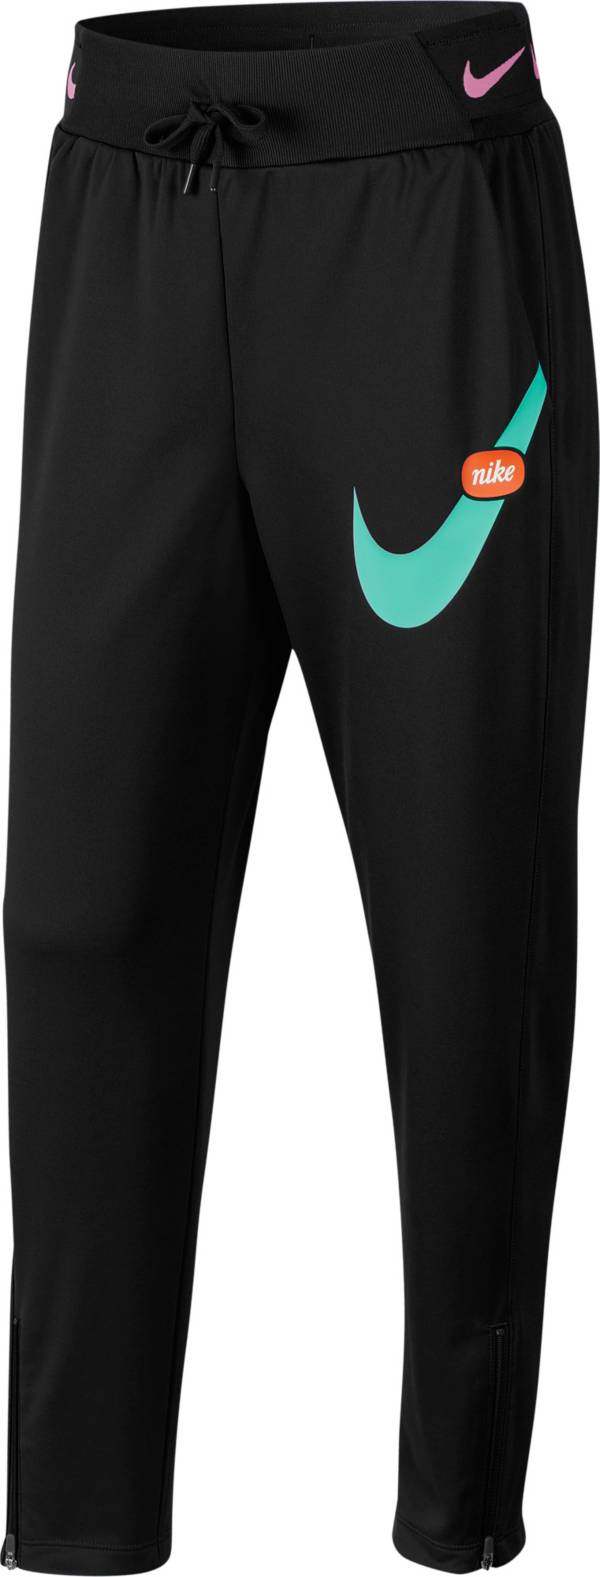 Nike Girls' Sportswear Just Do It Pants product image